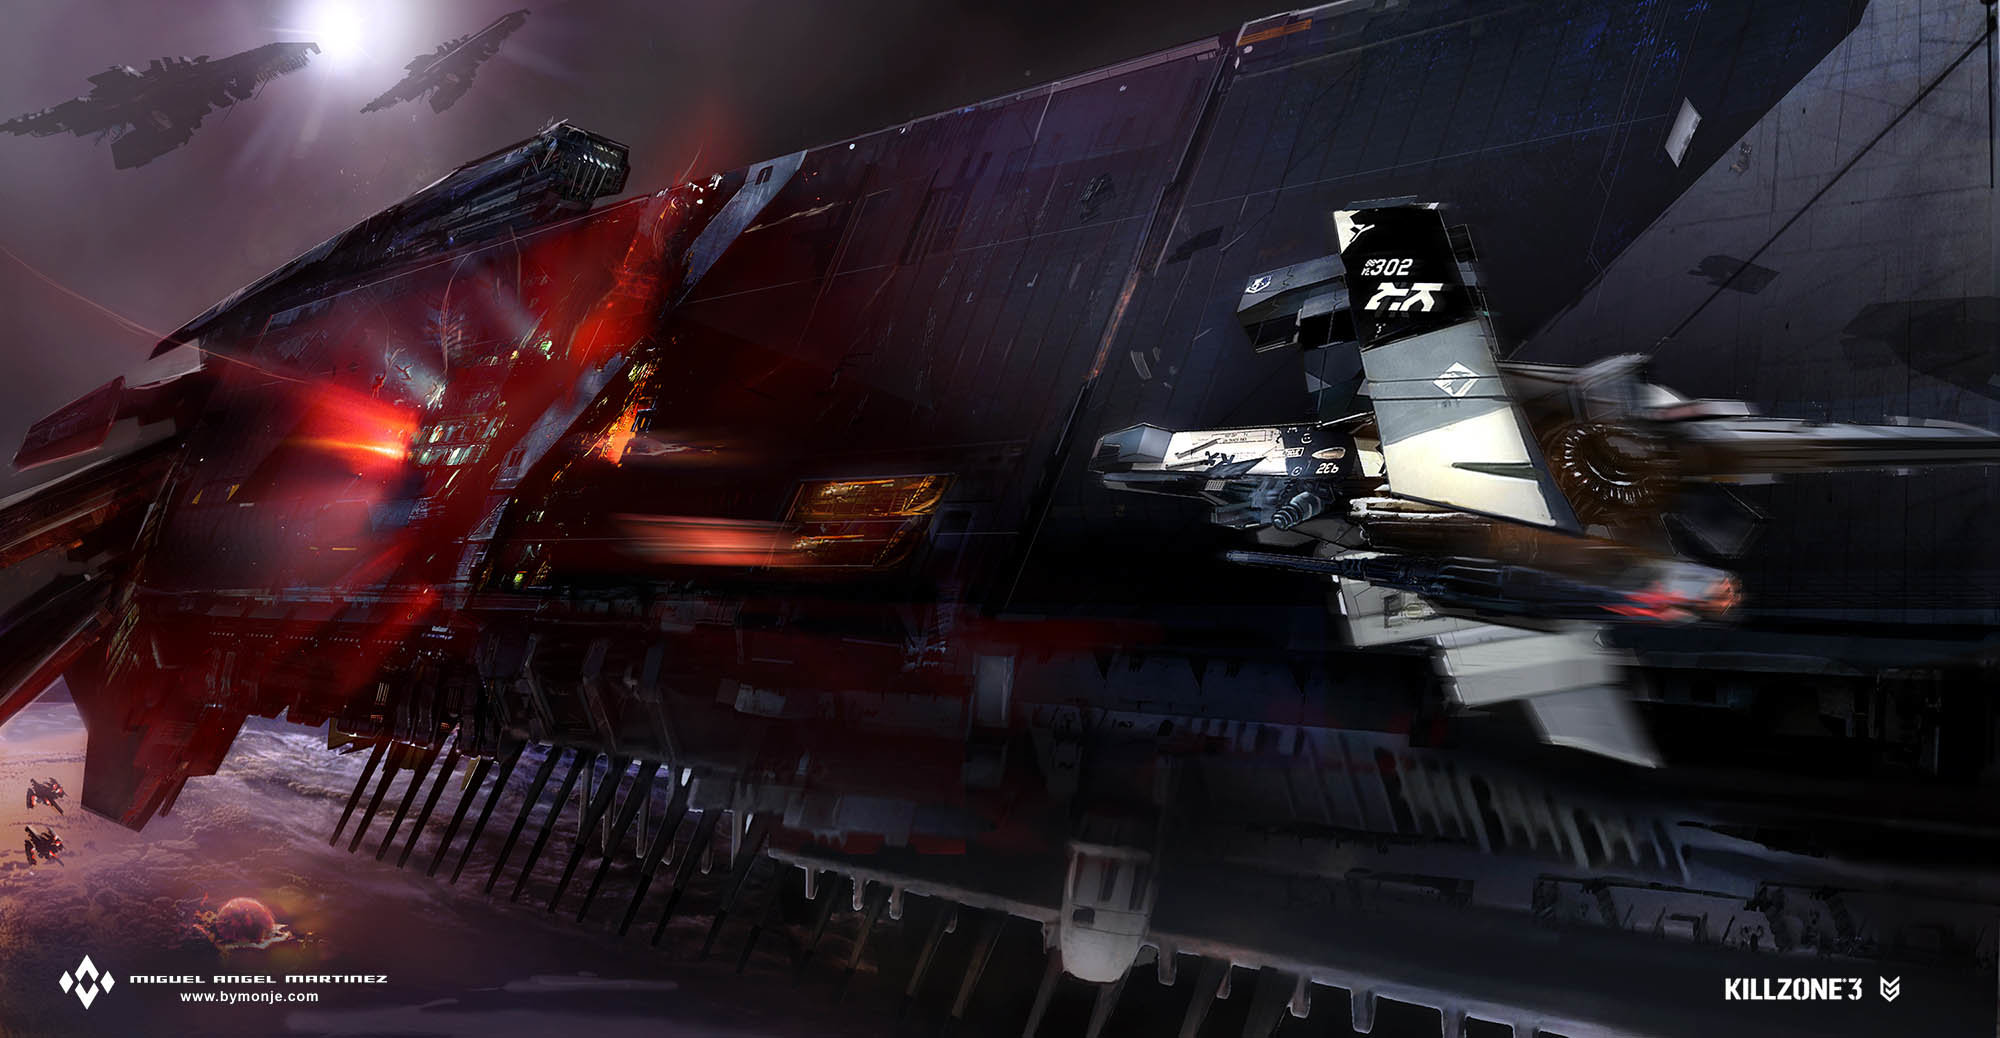 killzone-3-Stahl-cruiser-damaged-concept-art-miguel-bymonje